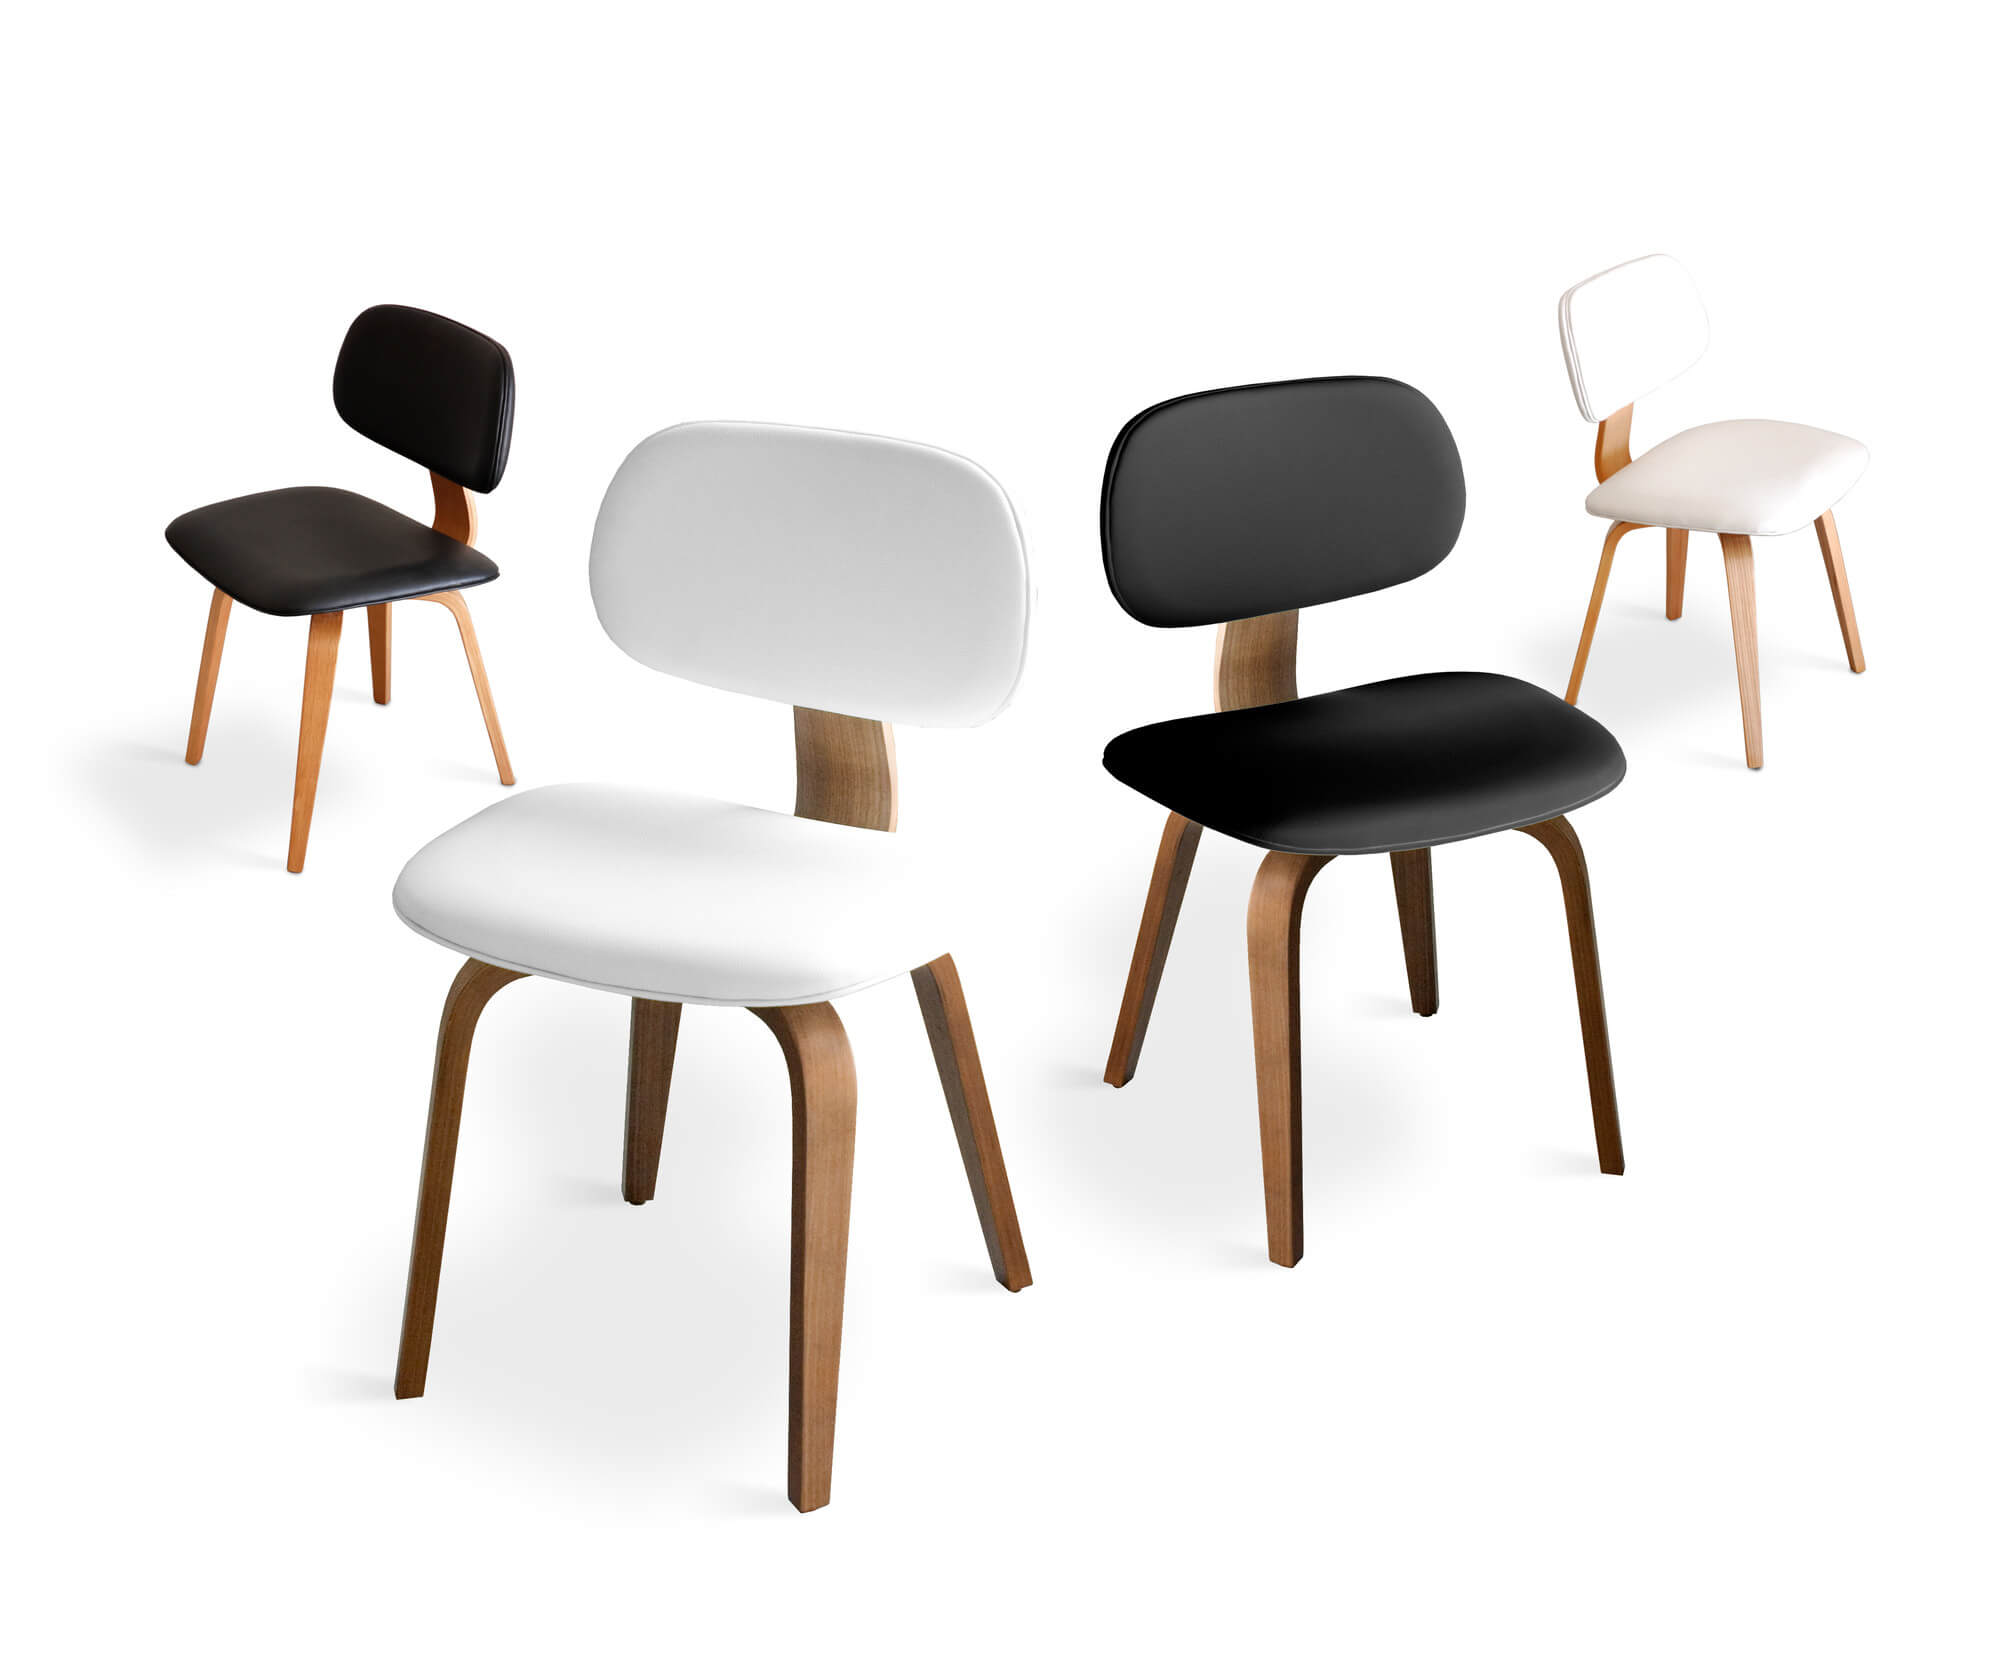 dining chair styles chart plexiglass folding chairs 19 types of room crucial buying guide with wood frames are by far the most popular models you ll find